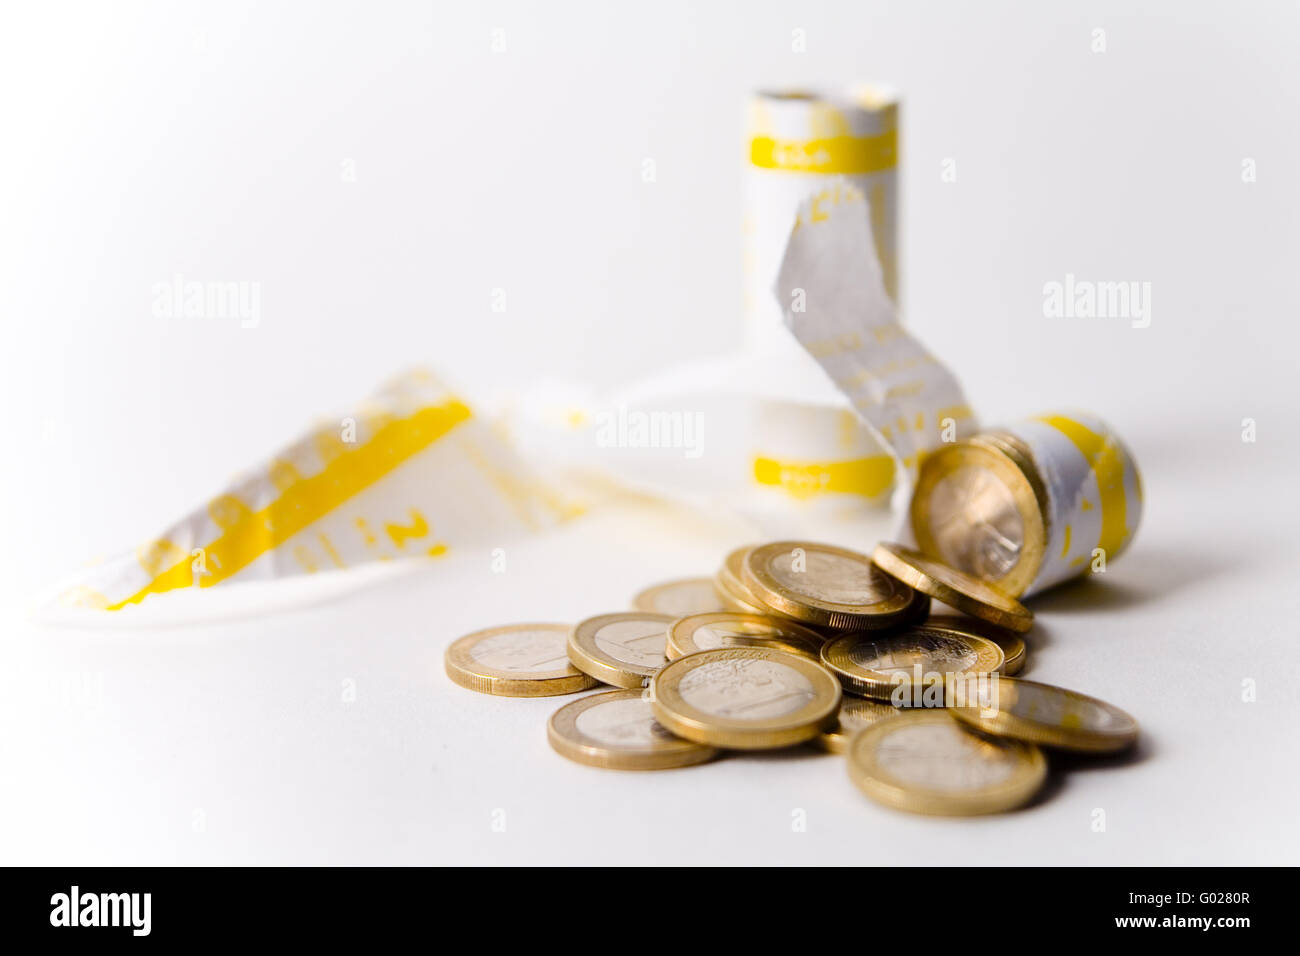 wrapped euro coins - Stock Image